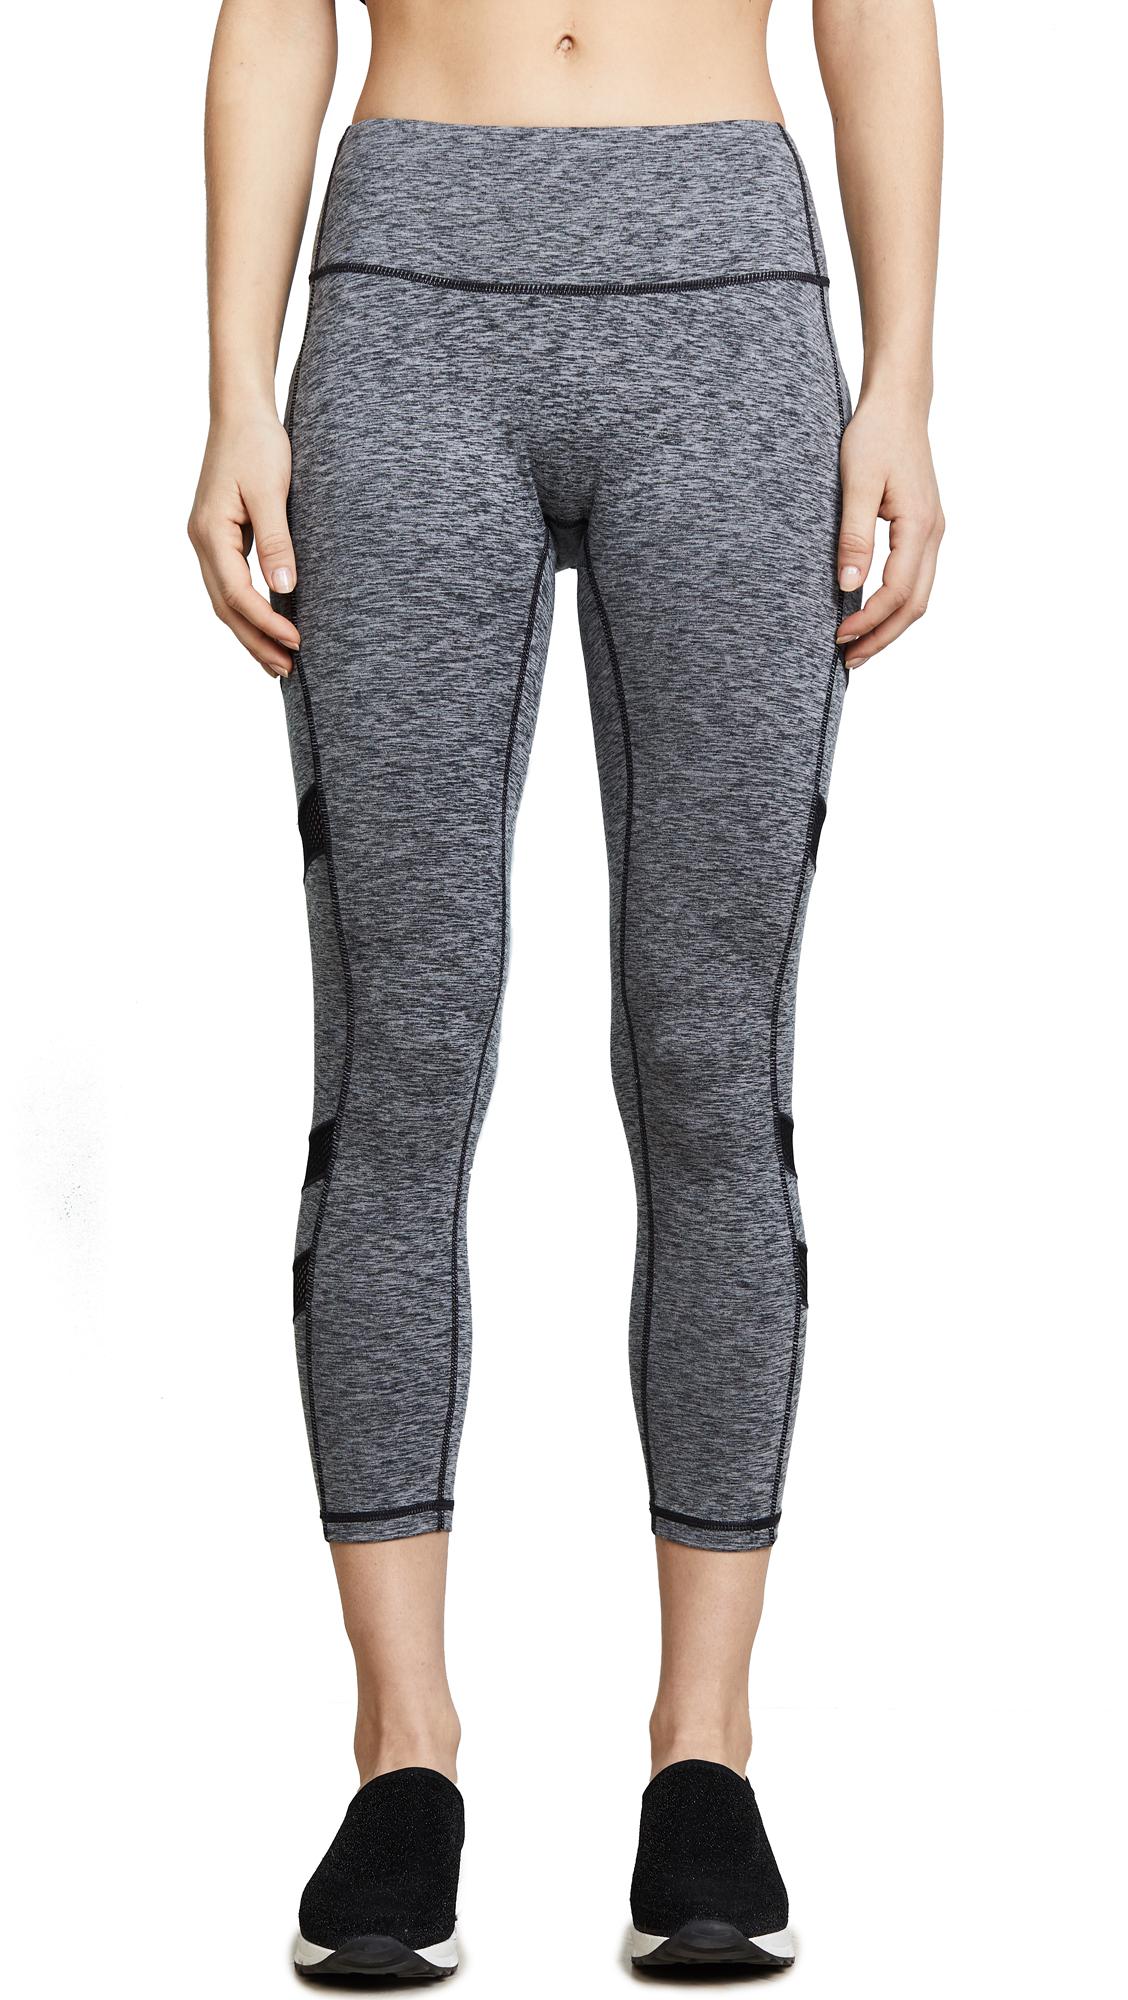 PRISMSPORT RELAY LEGGINGS